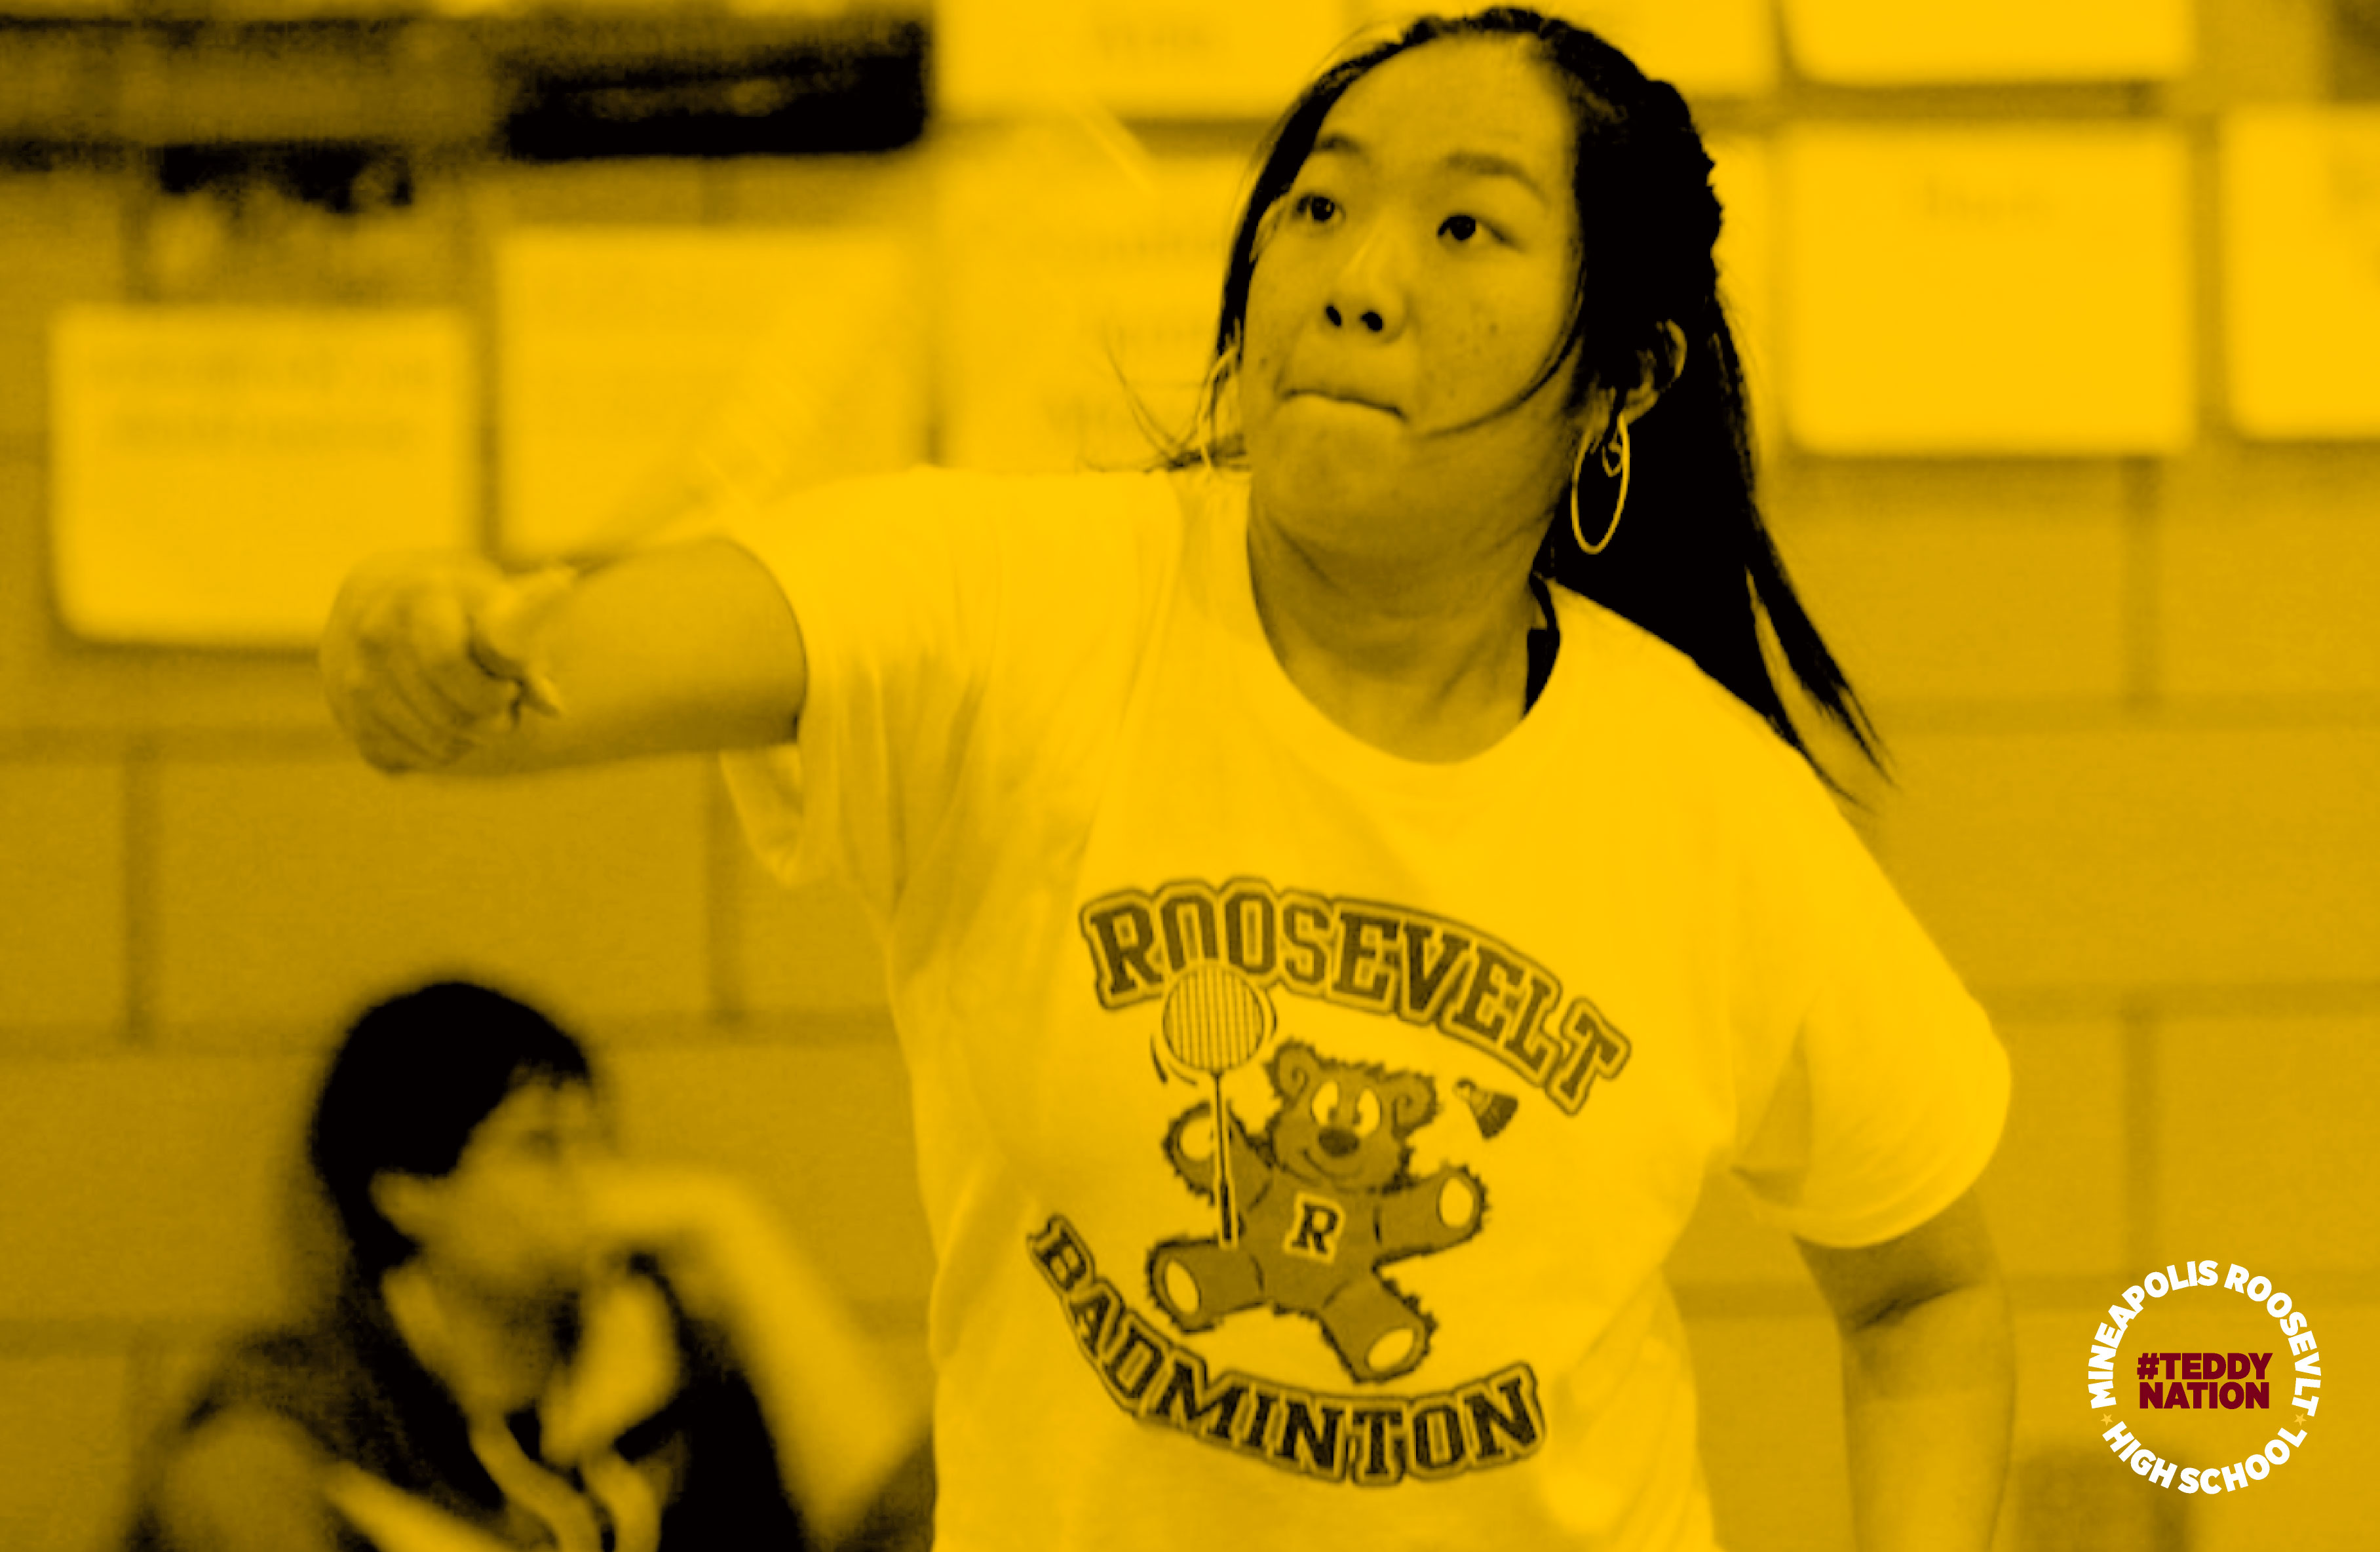 """Minneapolis Roosevelt High School in South Minneapolis. Named after Theodore """"Teddy"""" Roosevelt. Badminton matches played at Jack Wells Gymnasium. The image displays a Roosevelt player hitting the Badminton shuttlecock during a match.  #TeddyNation #TheVel"""